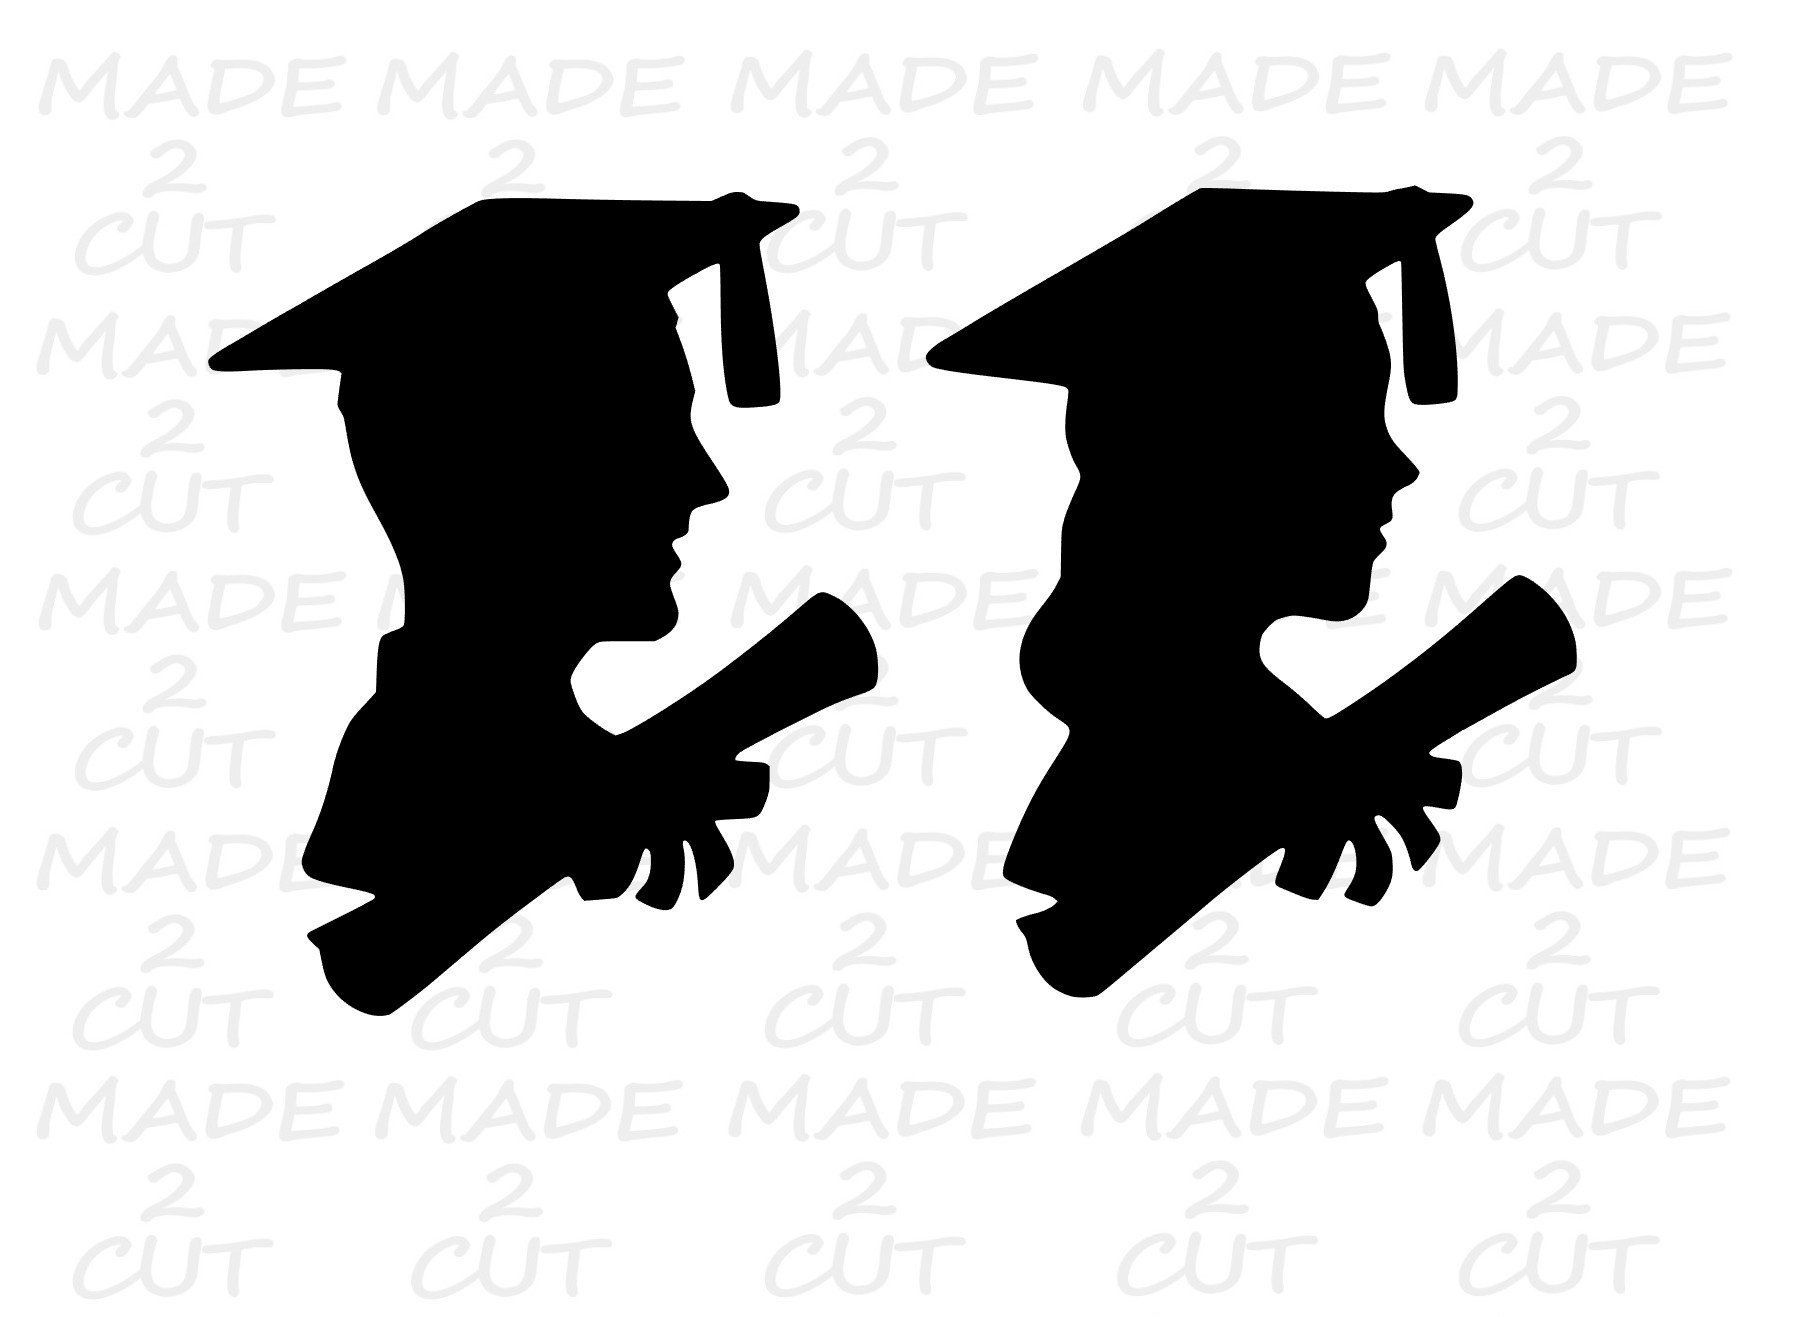 Graduation Svg Cap And Gown Design Boy Girl Graduation Etsy In 2021 Graduation Silhouette Girl Silhouette Cap And Gown